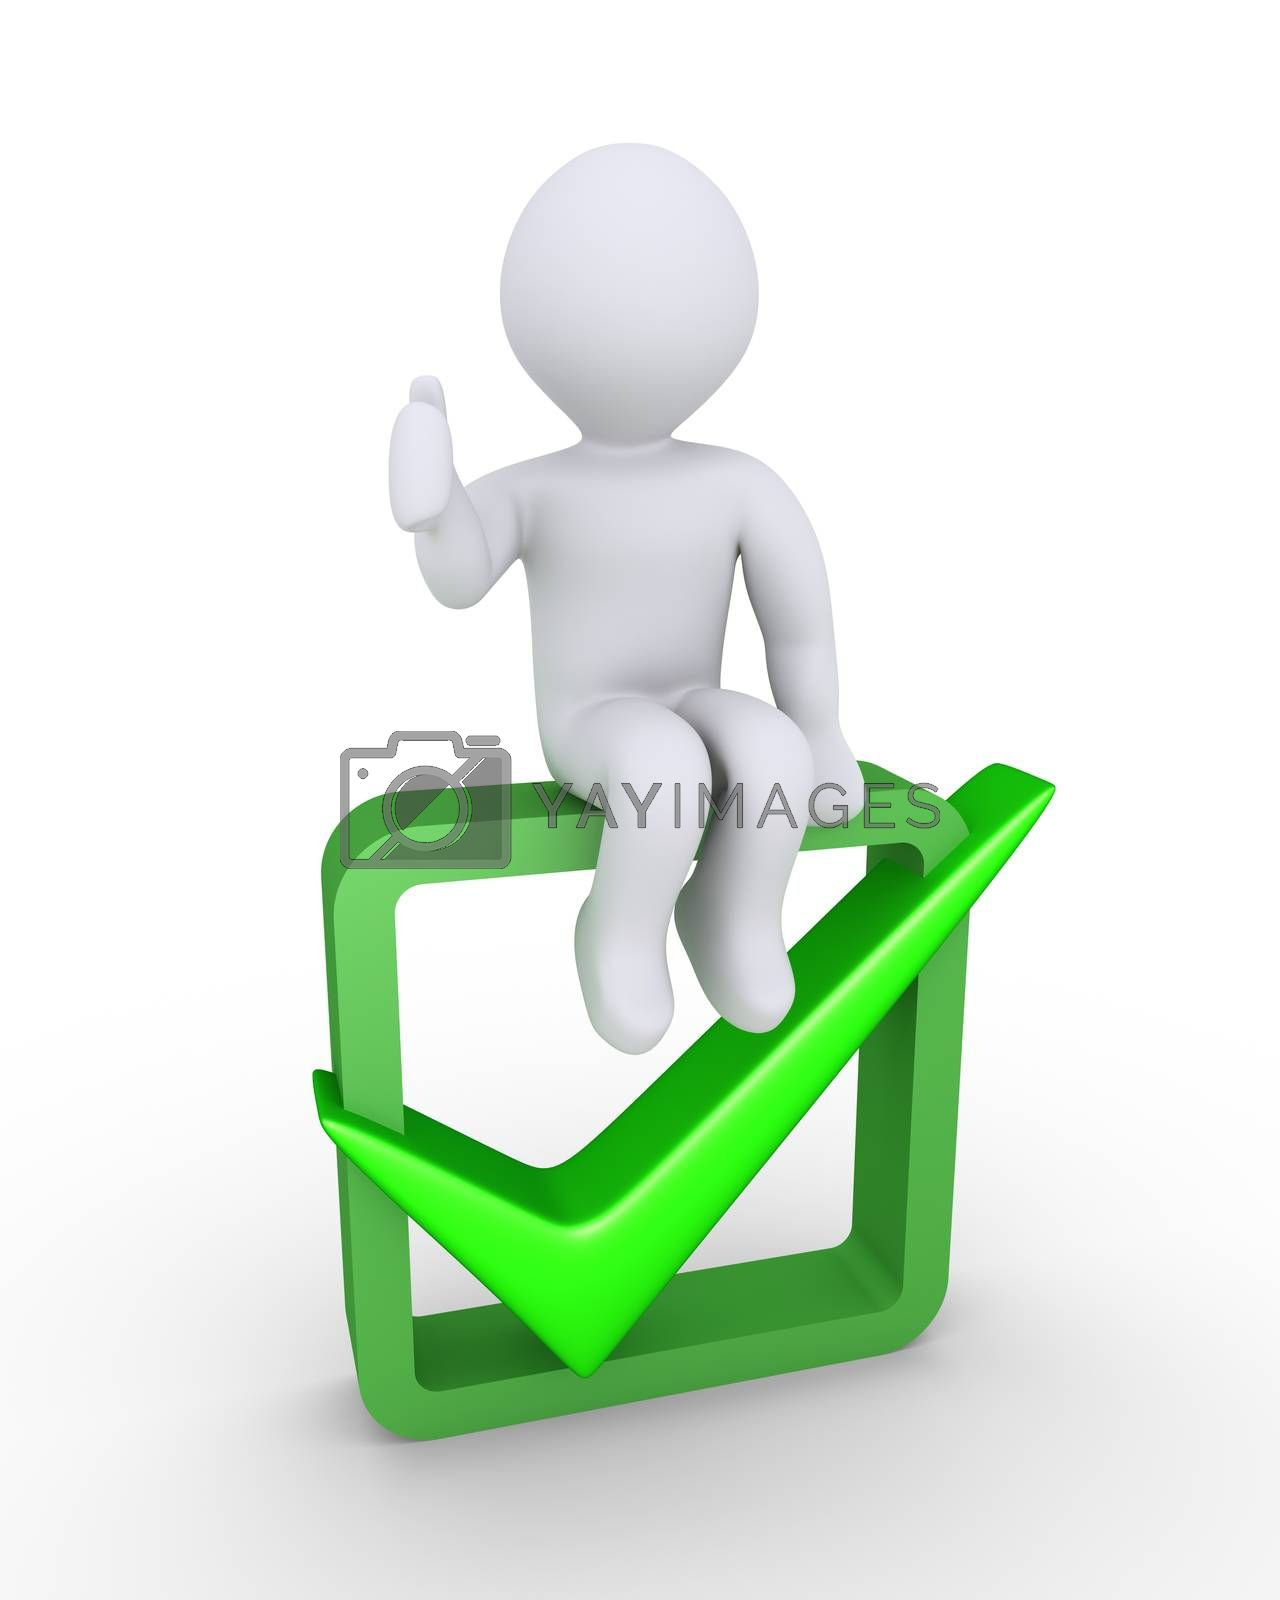 Person with his thumb pointing up is sitting on a box with the check mark symbol